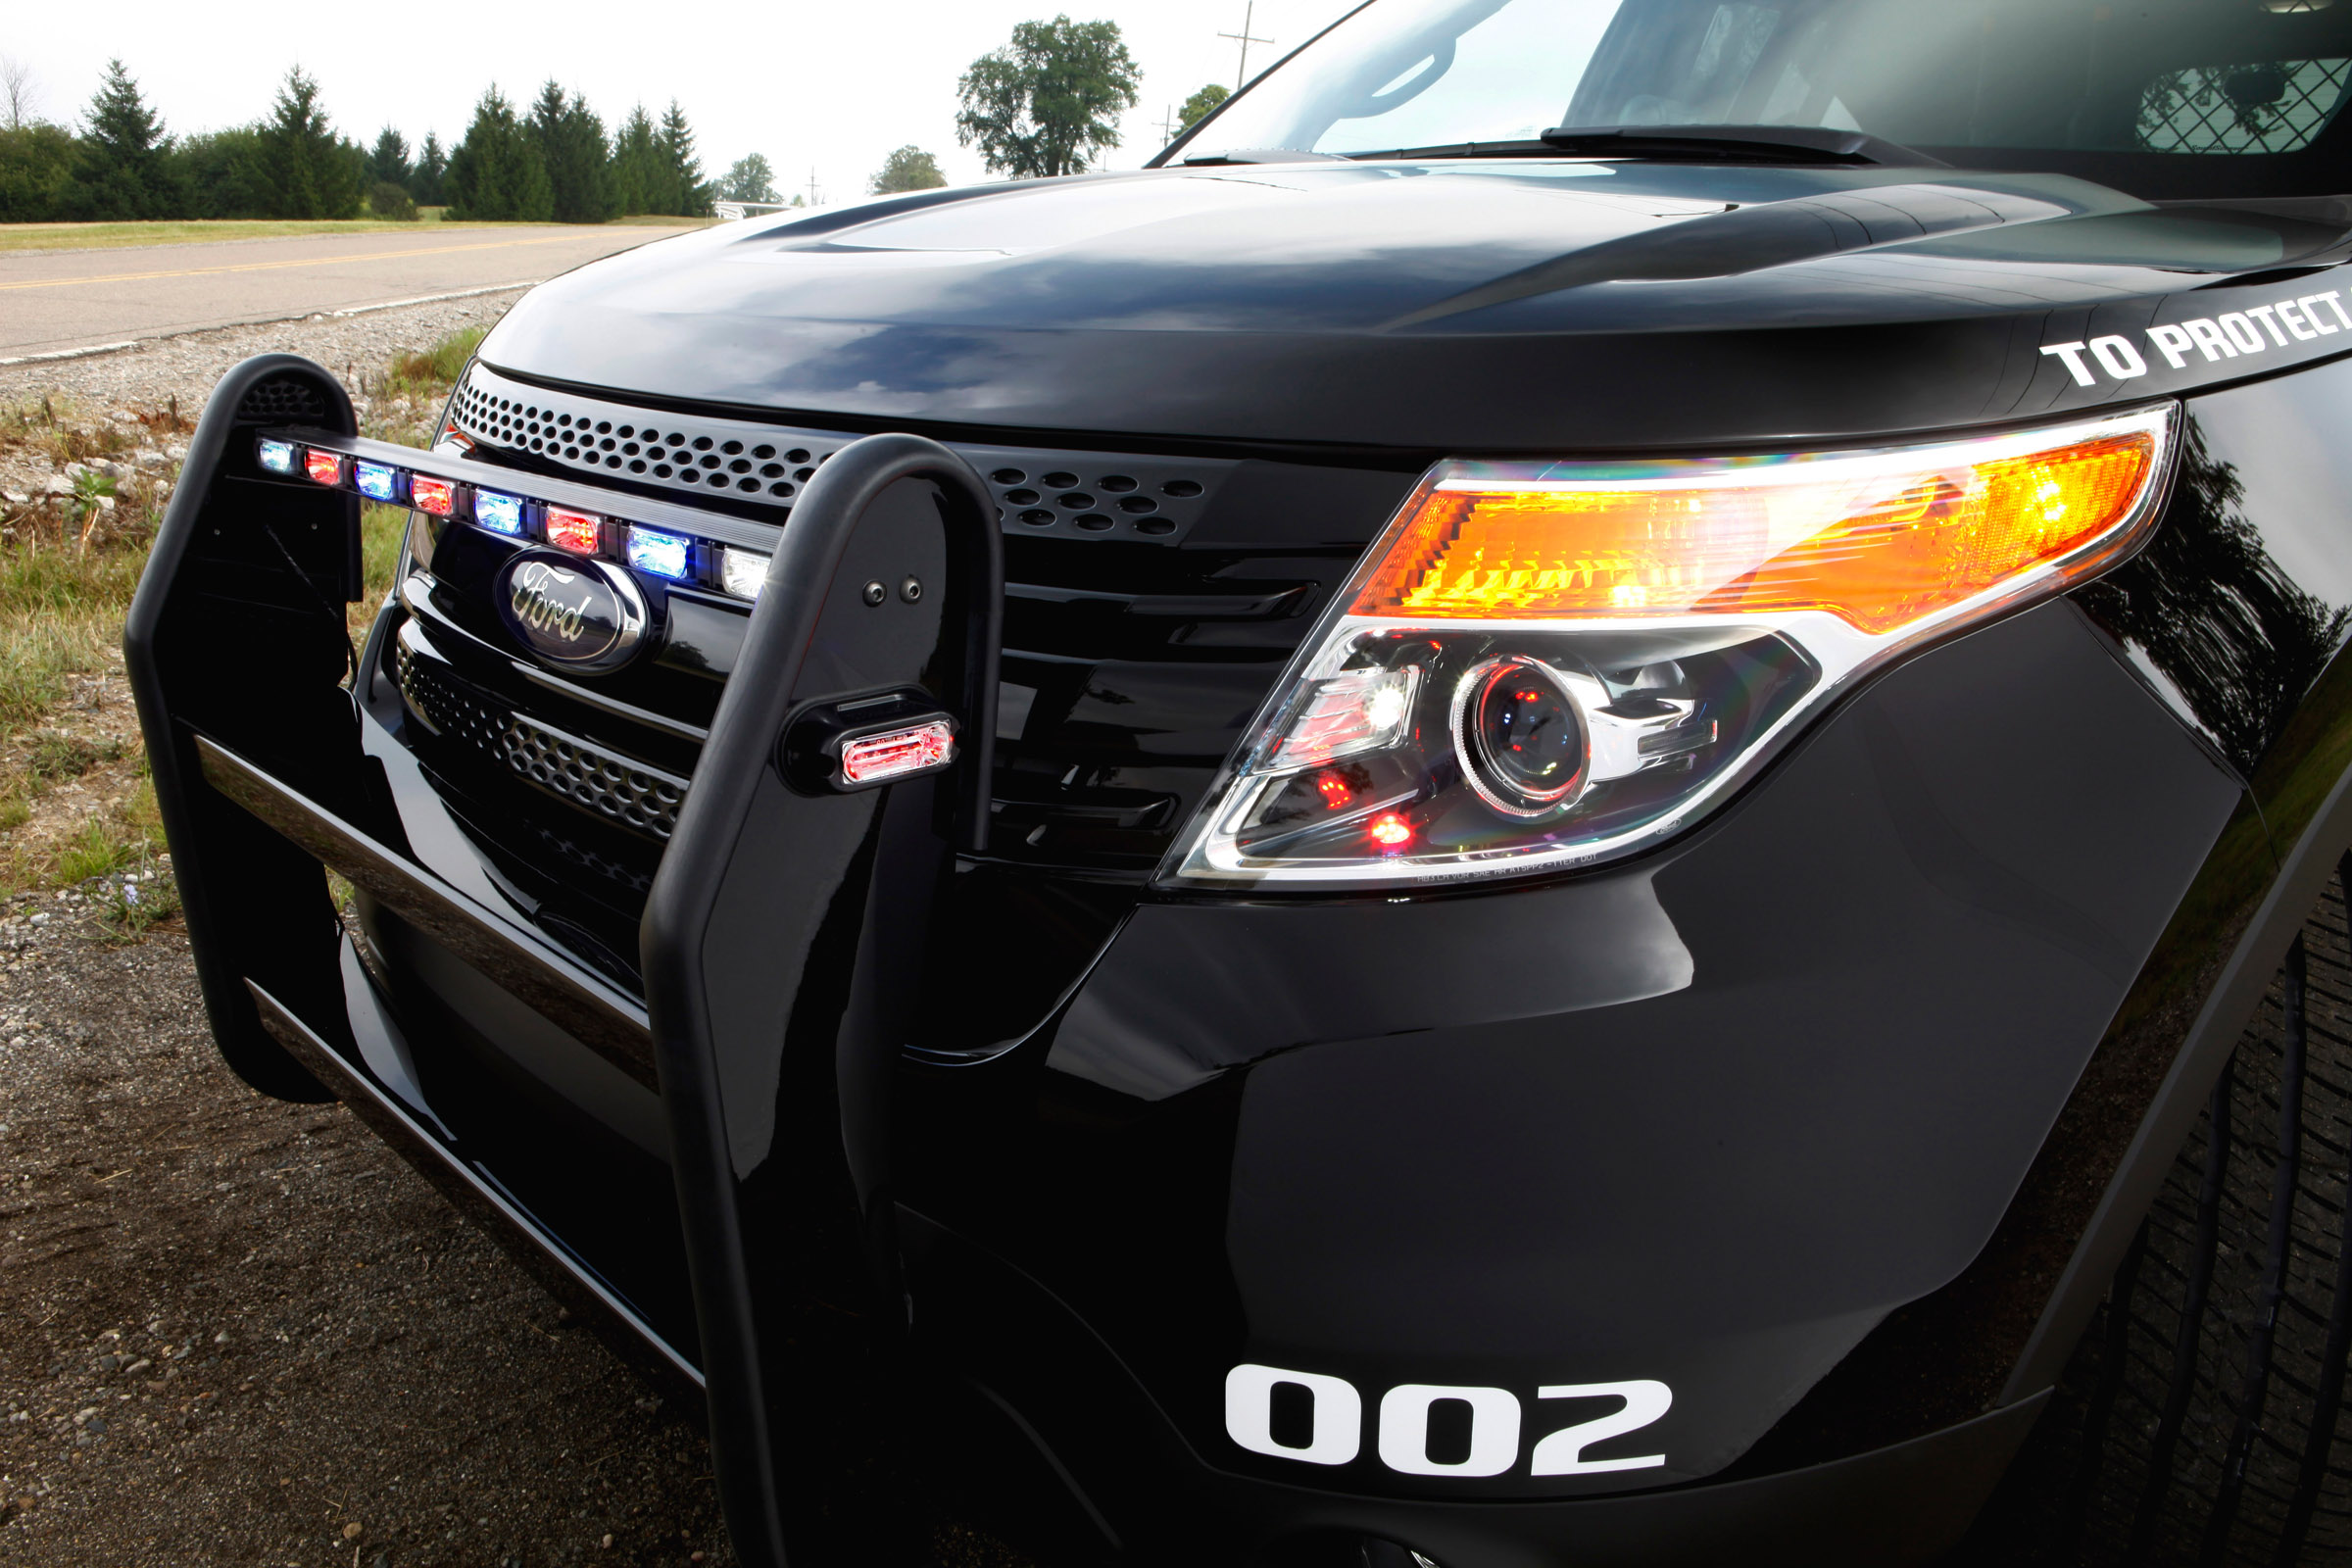 Ford Police Interceptor Utility Vehicle - Picture 41474